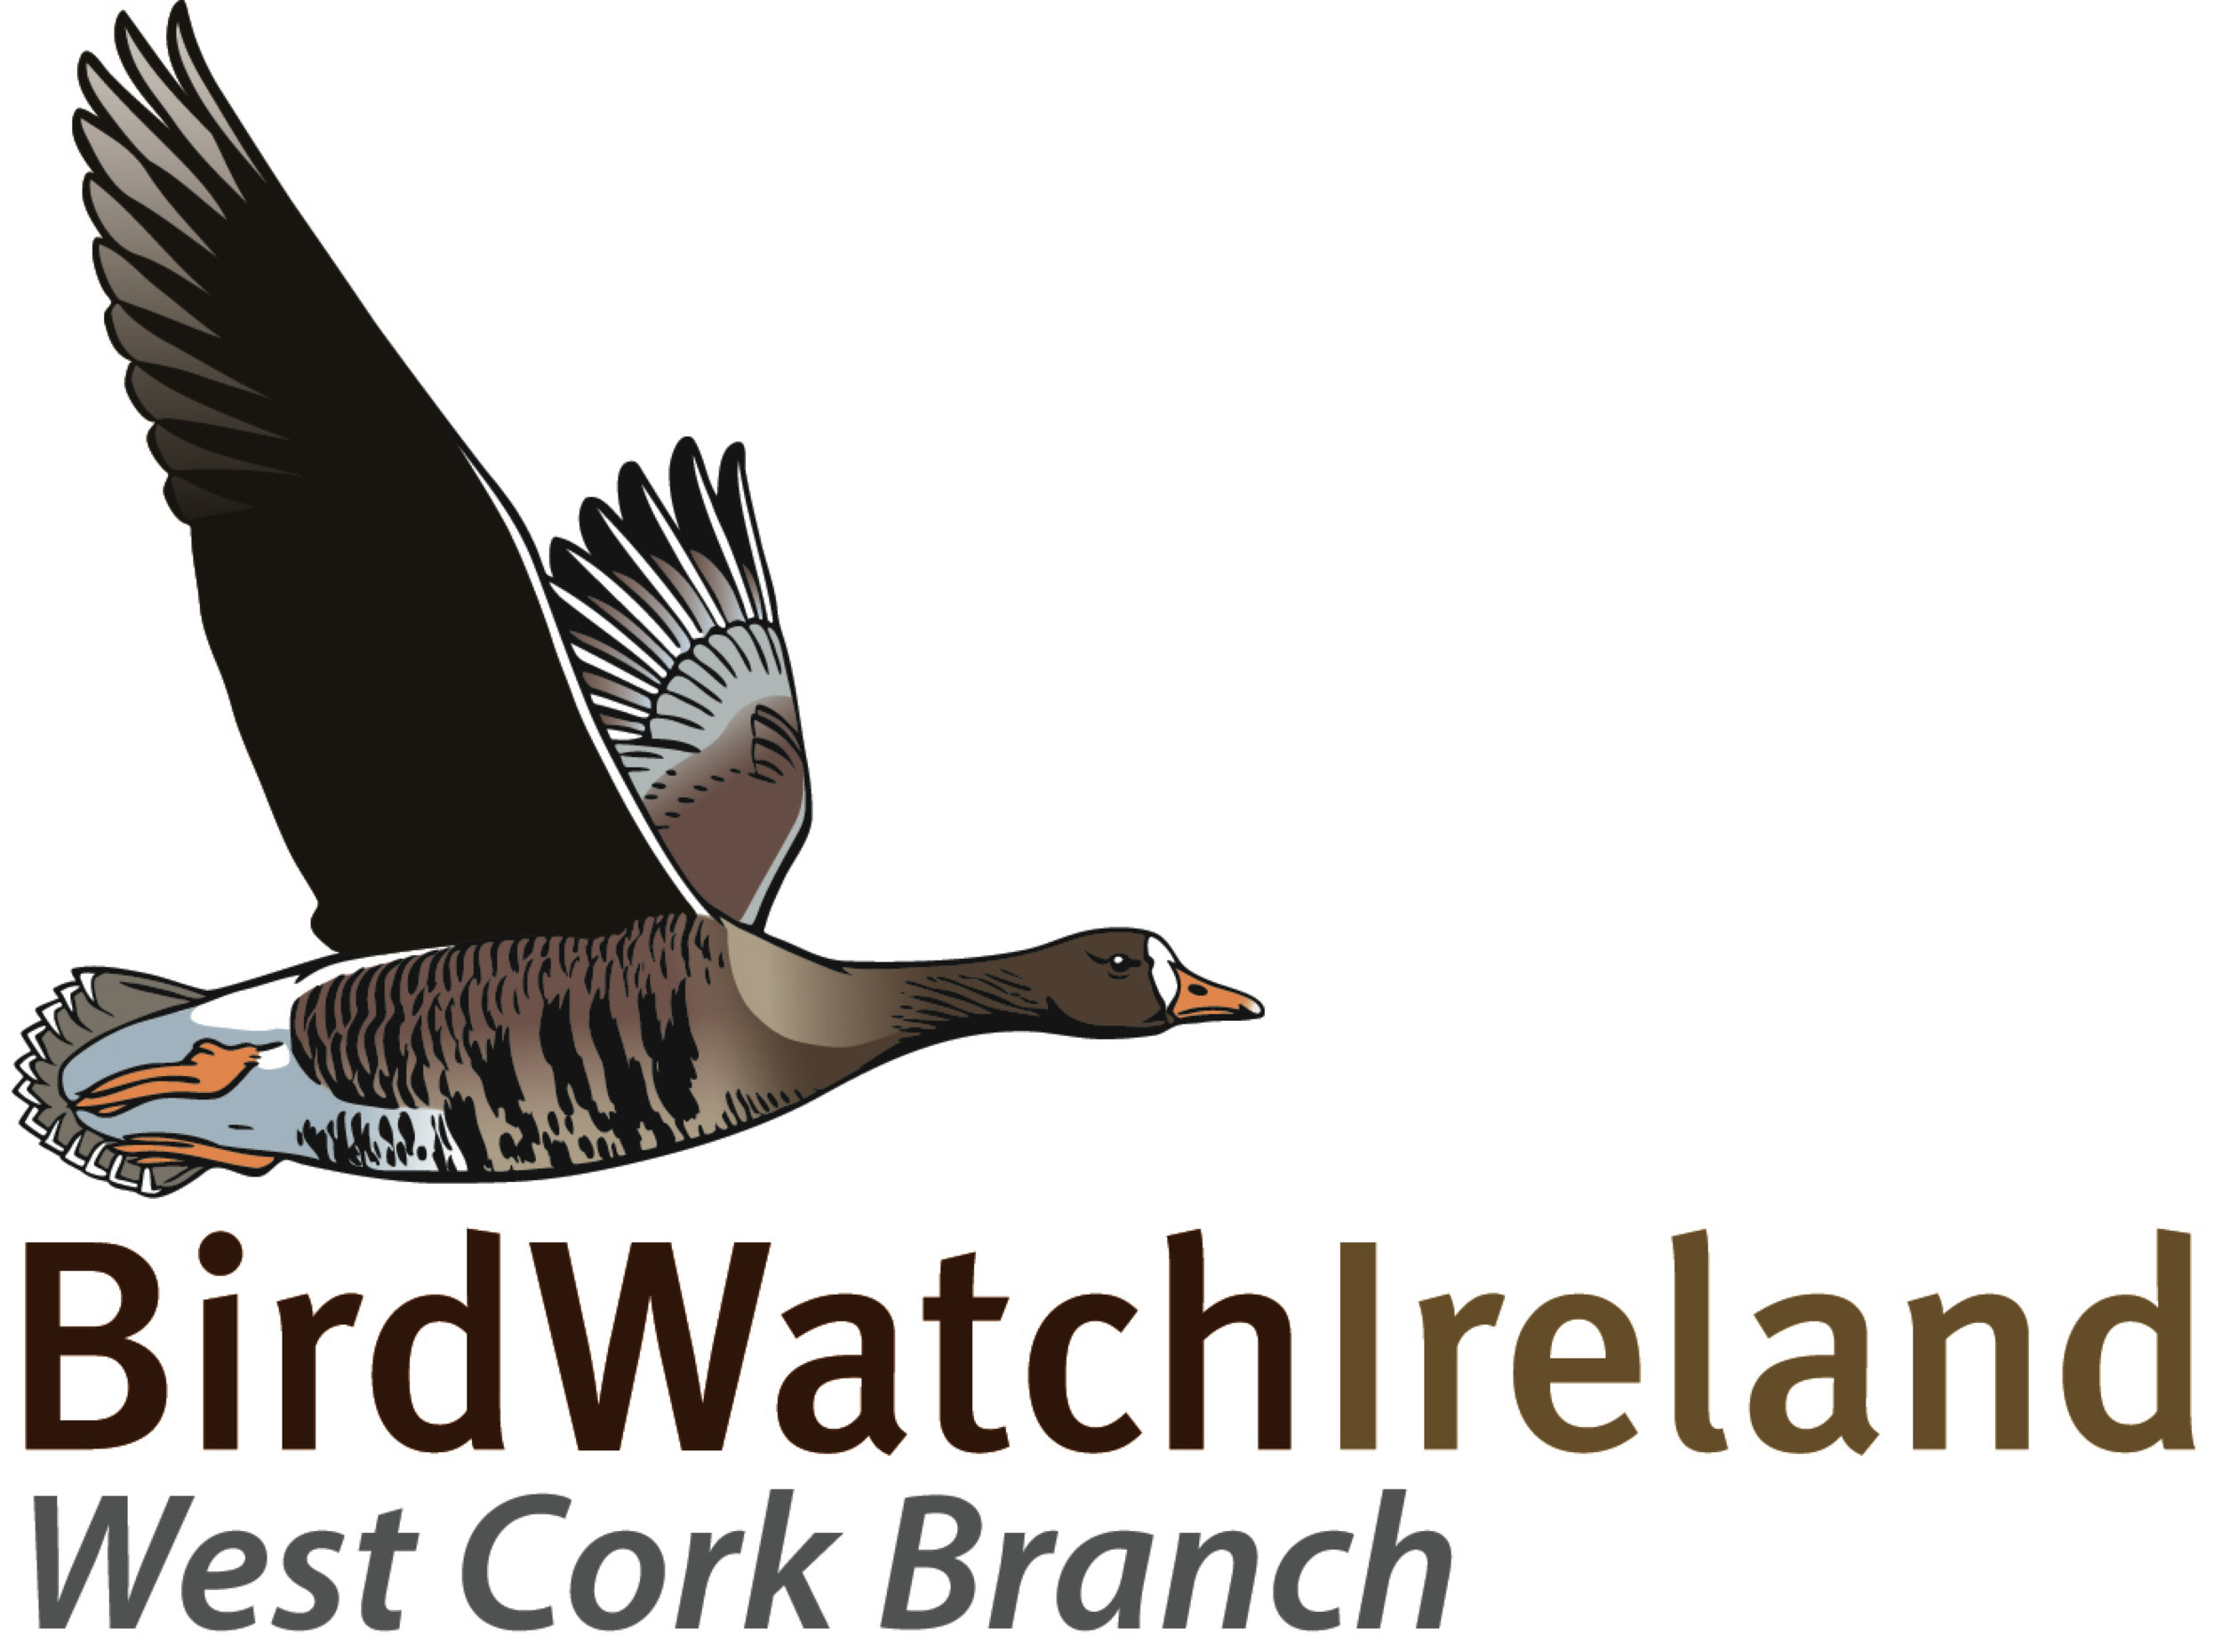 BirdWatch Ireland West Cork Branch